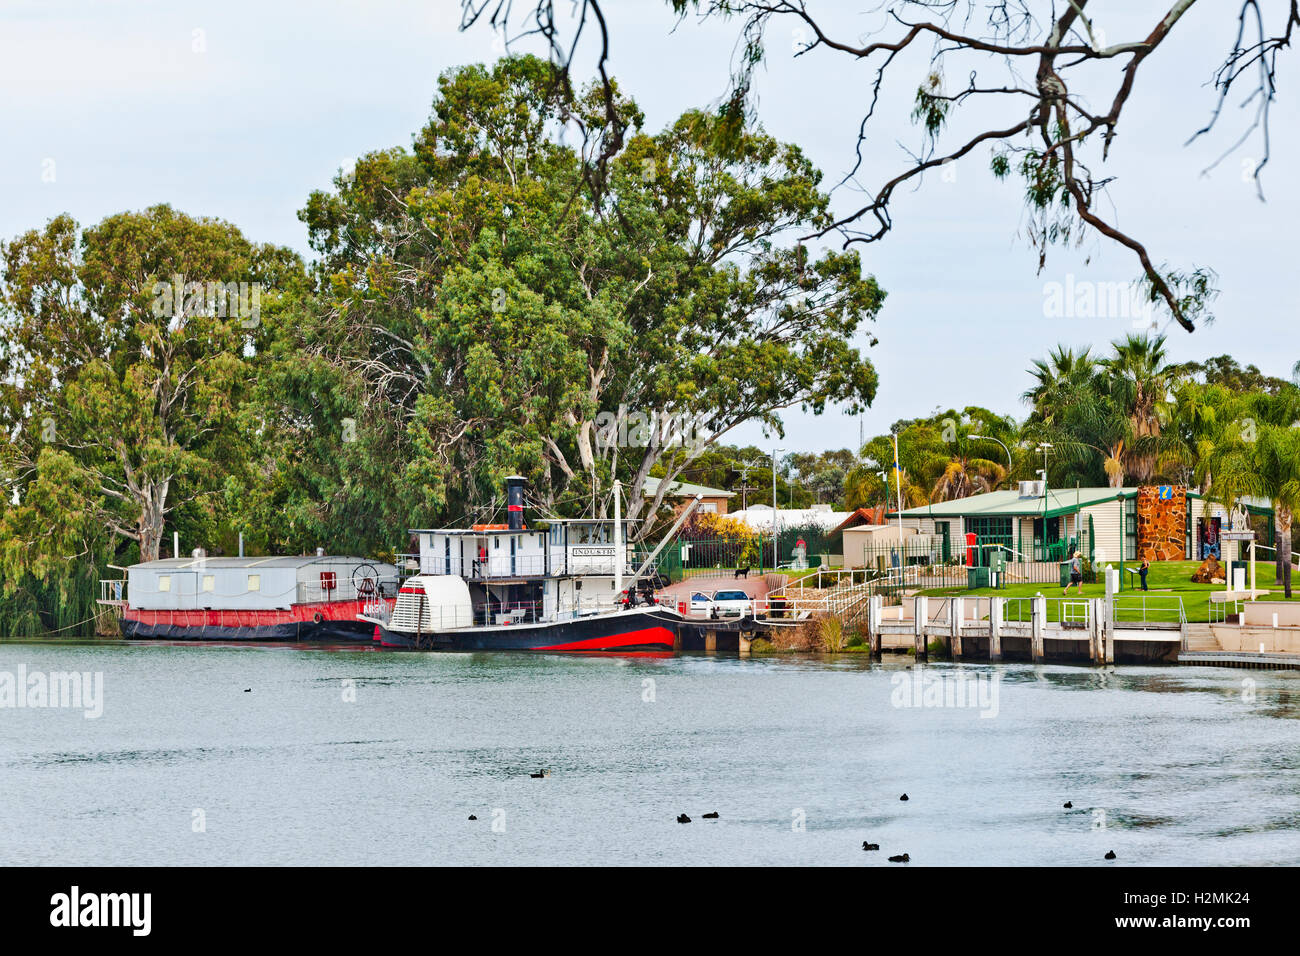 Renmark, South Australia, view of paddle steamer 'Industry' and the Argo Barge at the Renmark Visitor Information - Stock Image